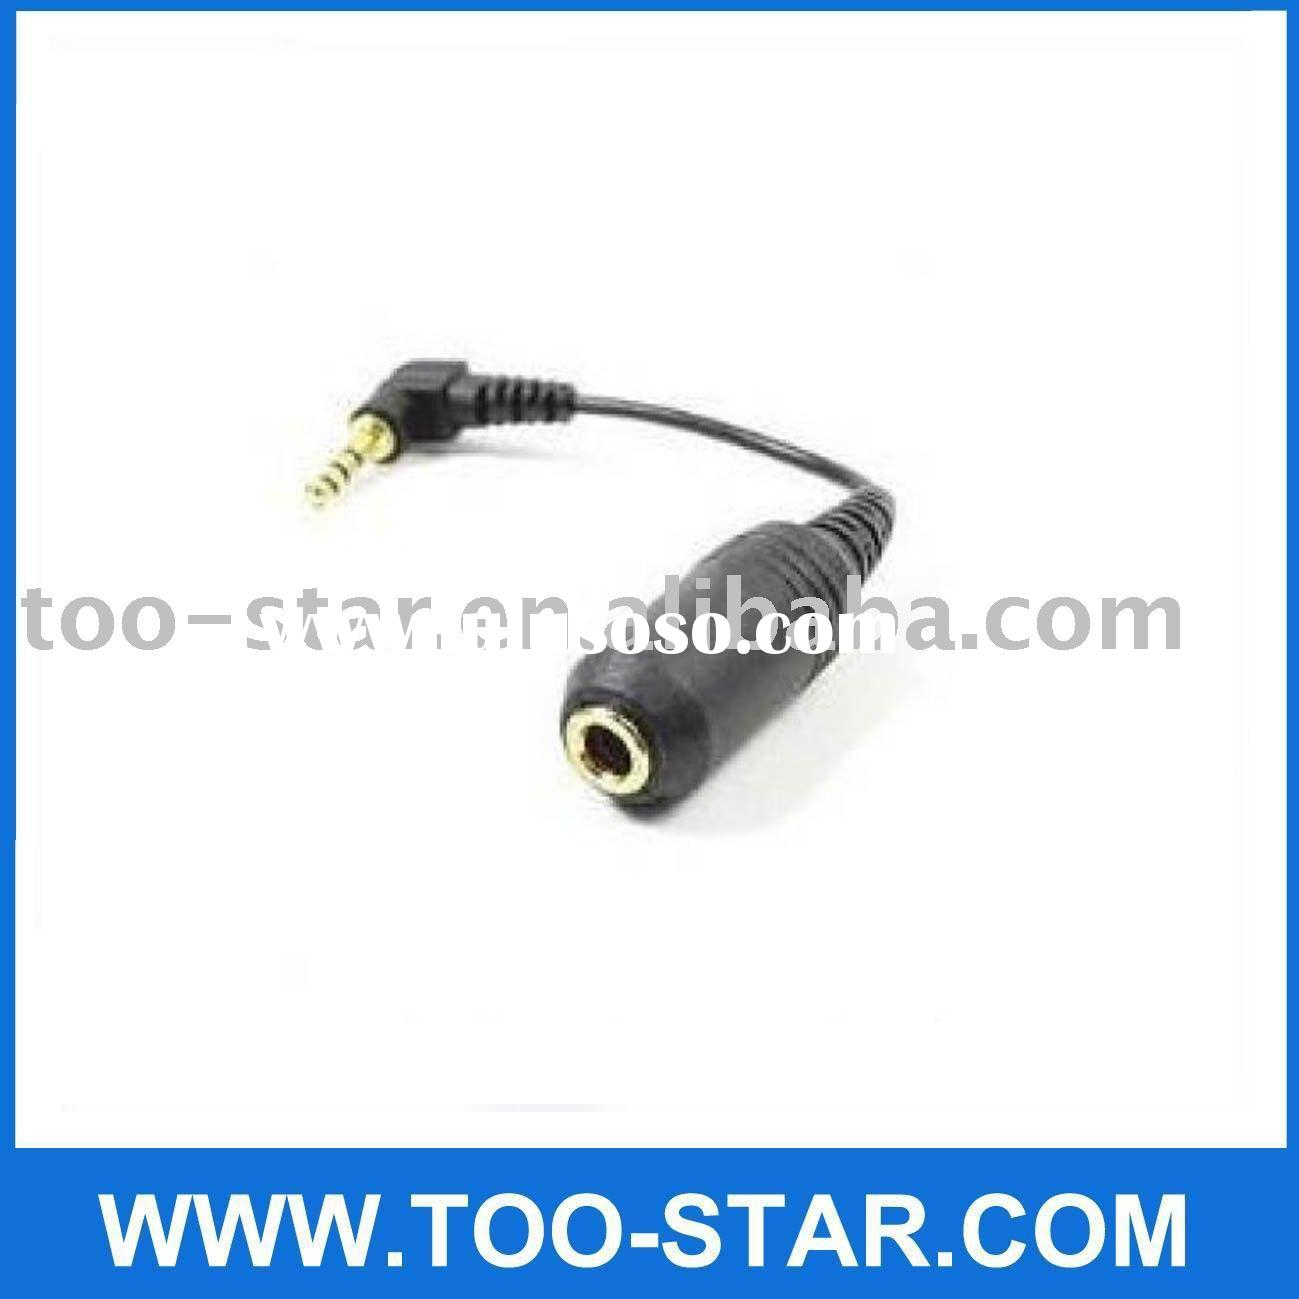 2.5 male to 3.5 female Audio Adapter